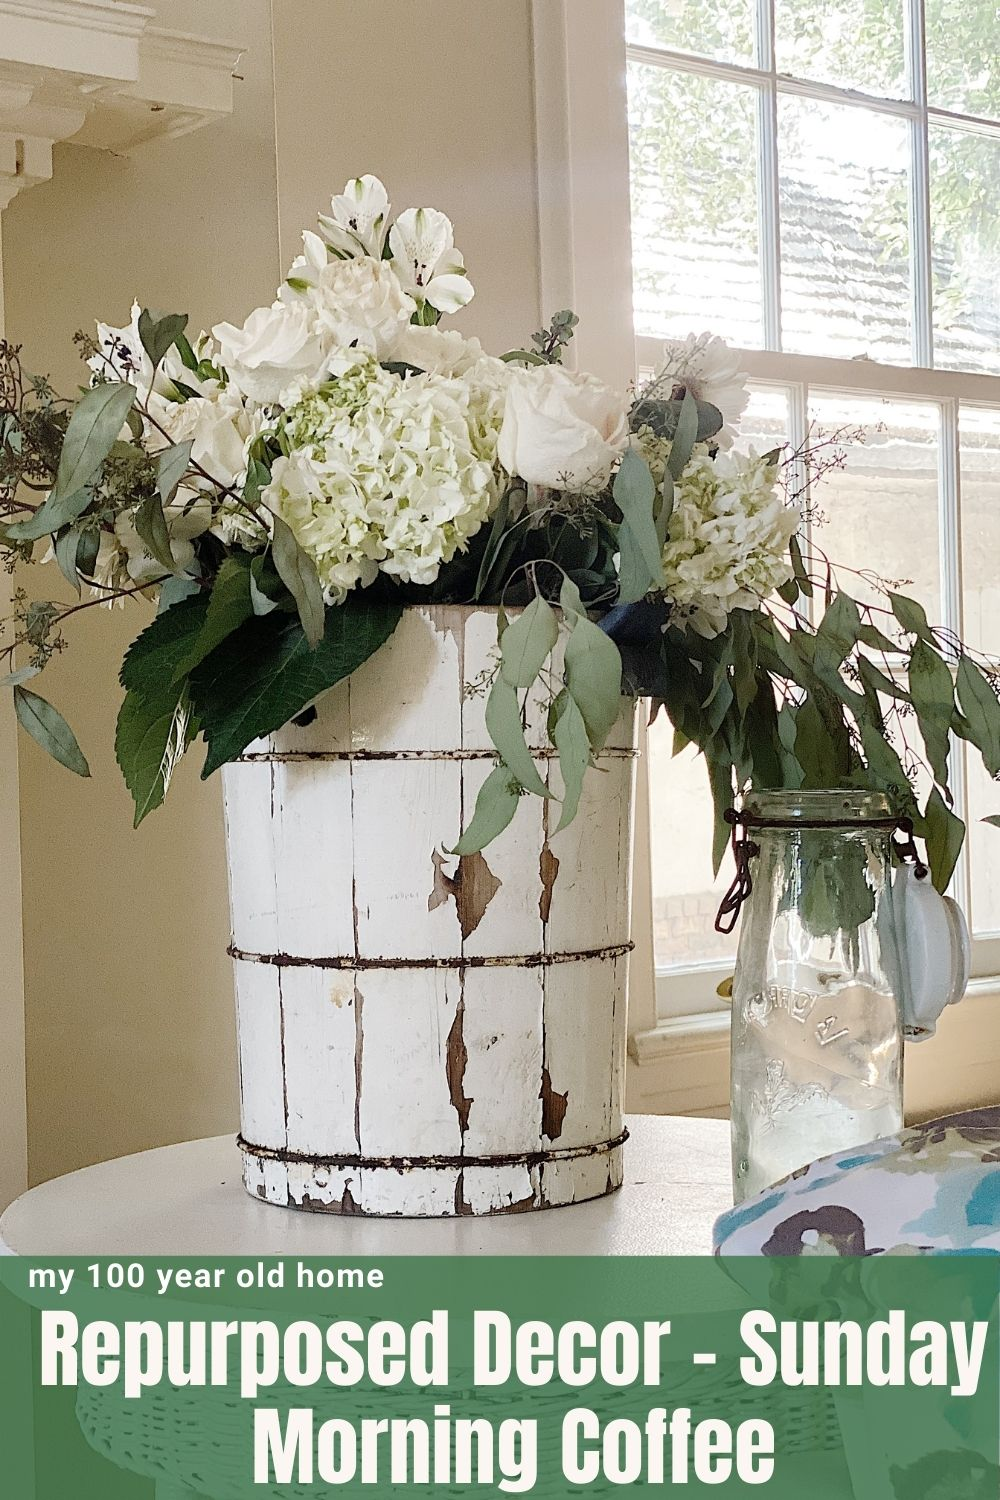 One of my favorite things is repurposed vintage items. This week, I am excited to share how I repurposed vintage and new decor items for use as flower vases.